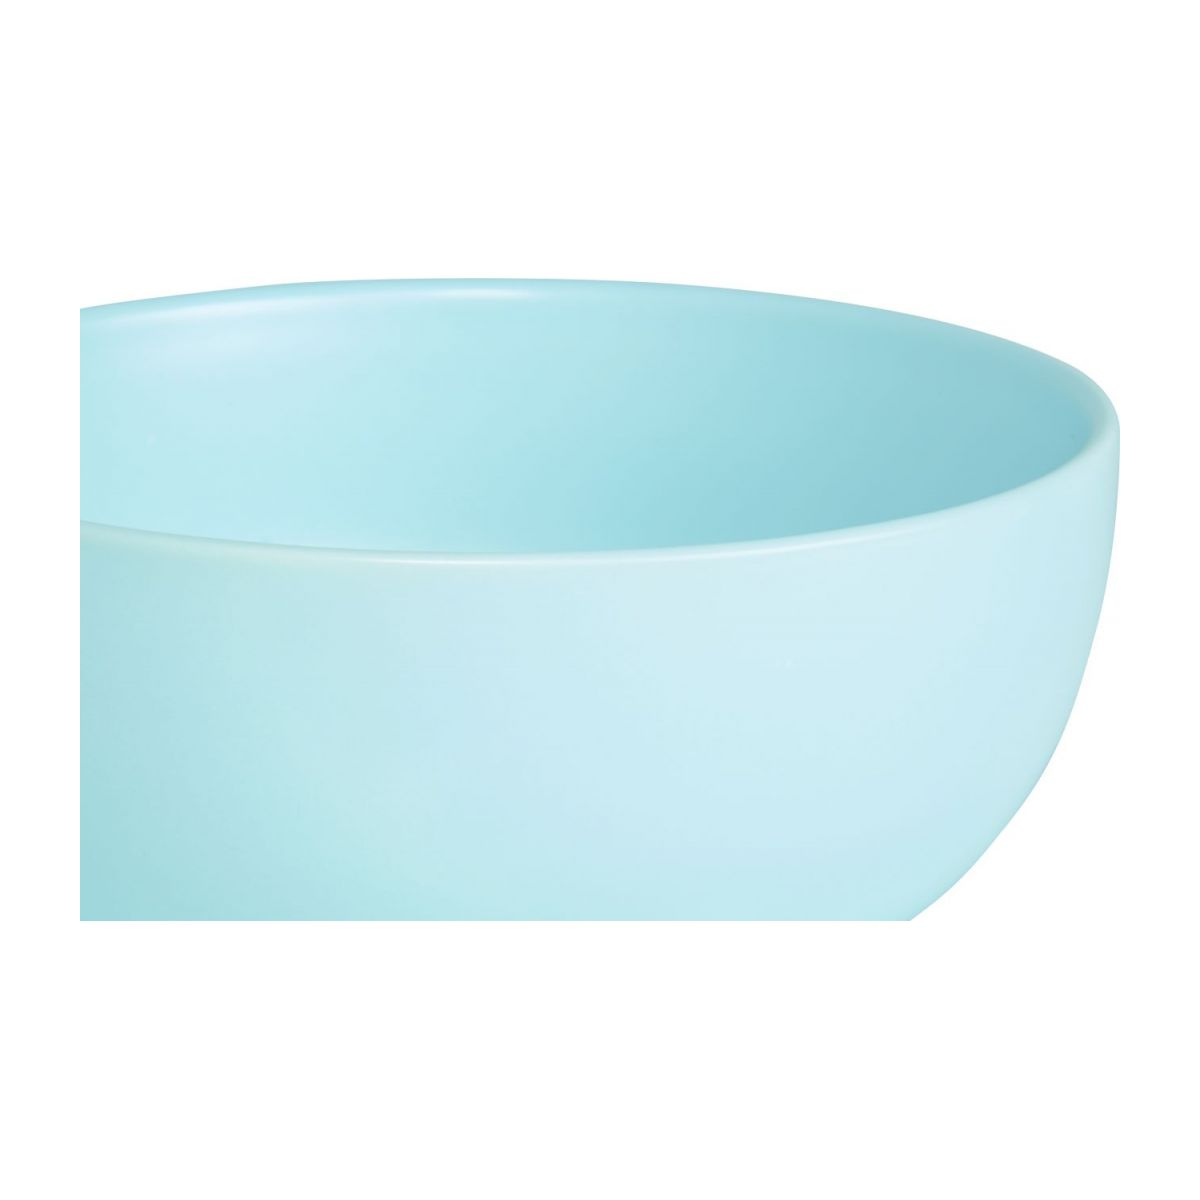 Bowl in standstone 14cm, blue n°2